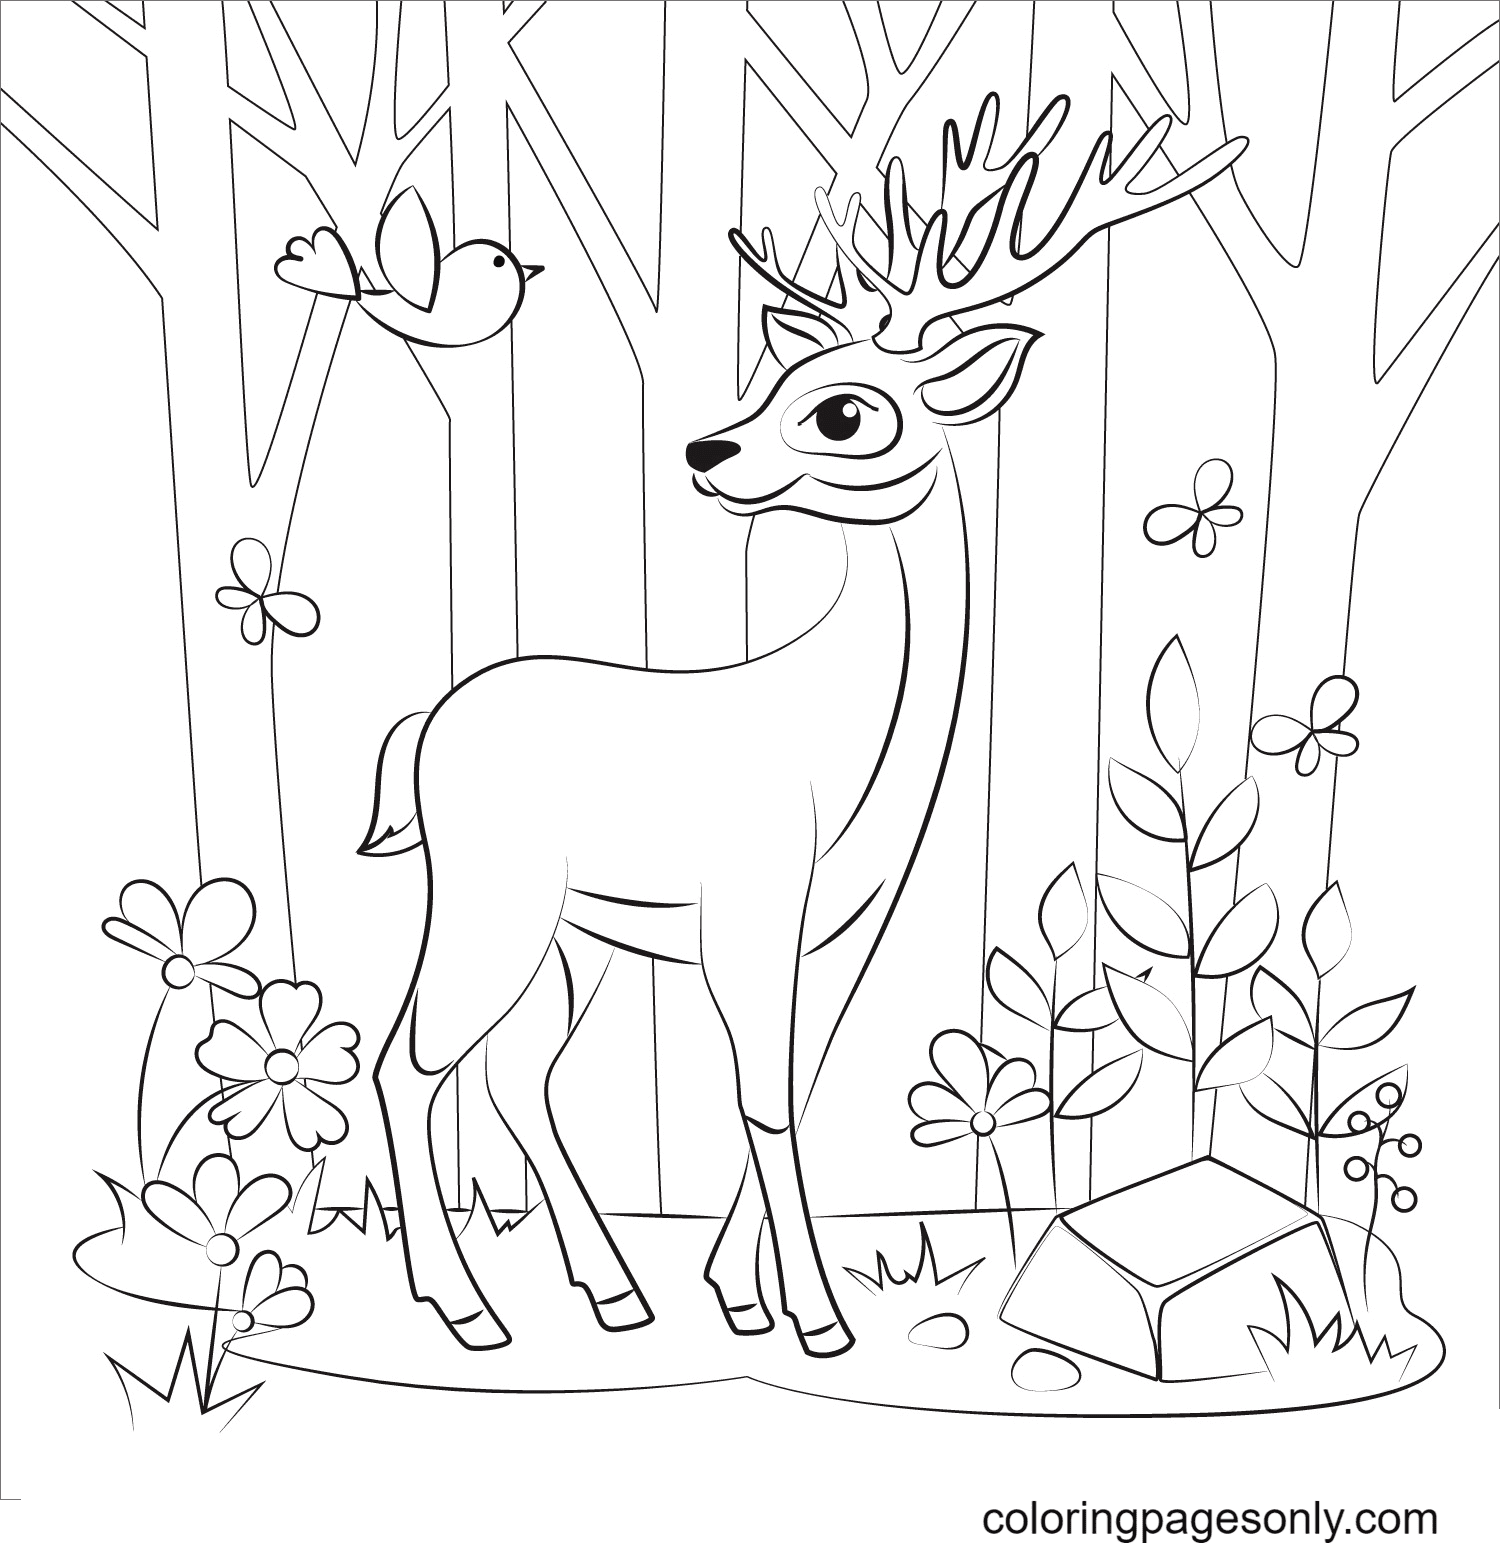 Reindeer In the Forest Coloring Page